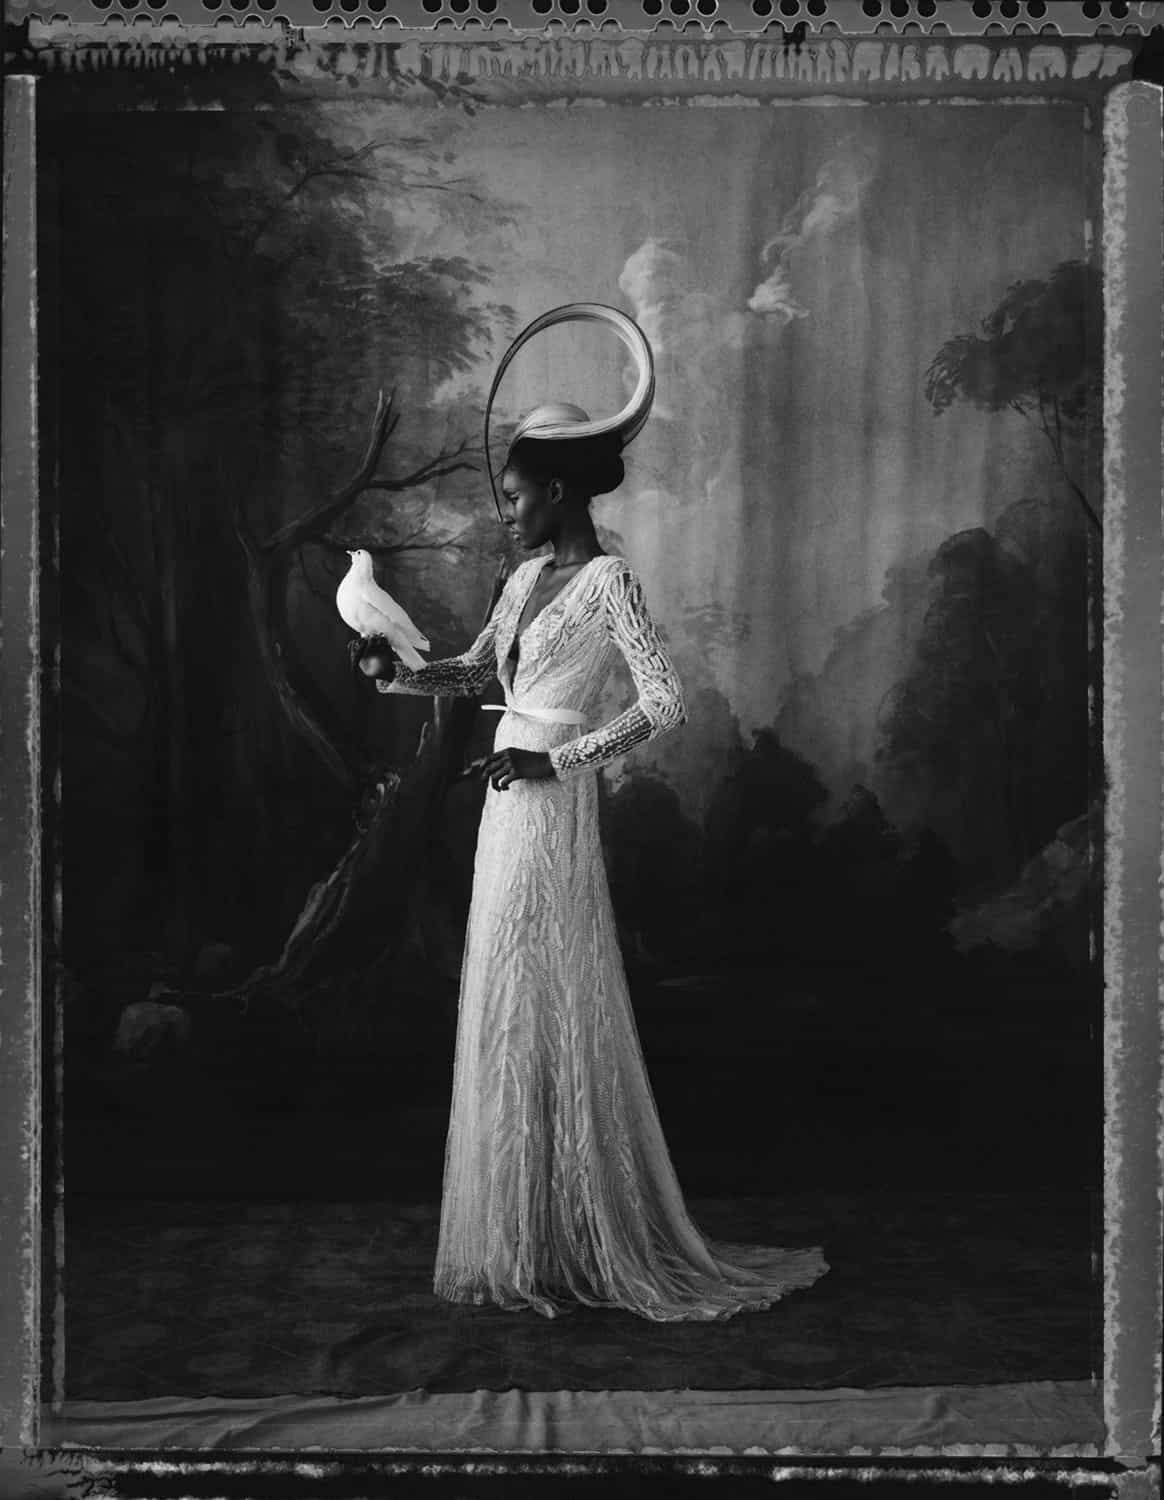 Fine art b/w photography of a black fashion model wearing haute couture by Elie Saab and hat by Philip Treacy, with a dove. Hand-painted backdrop of forst.